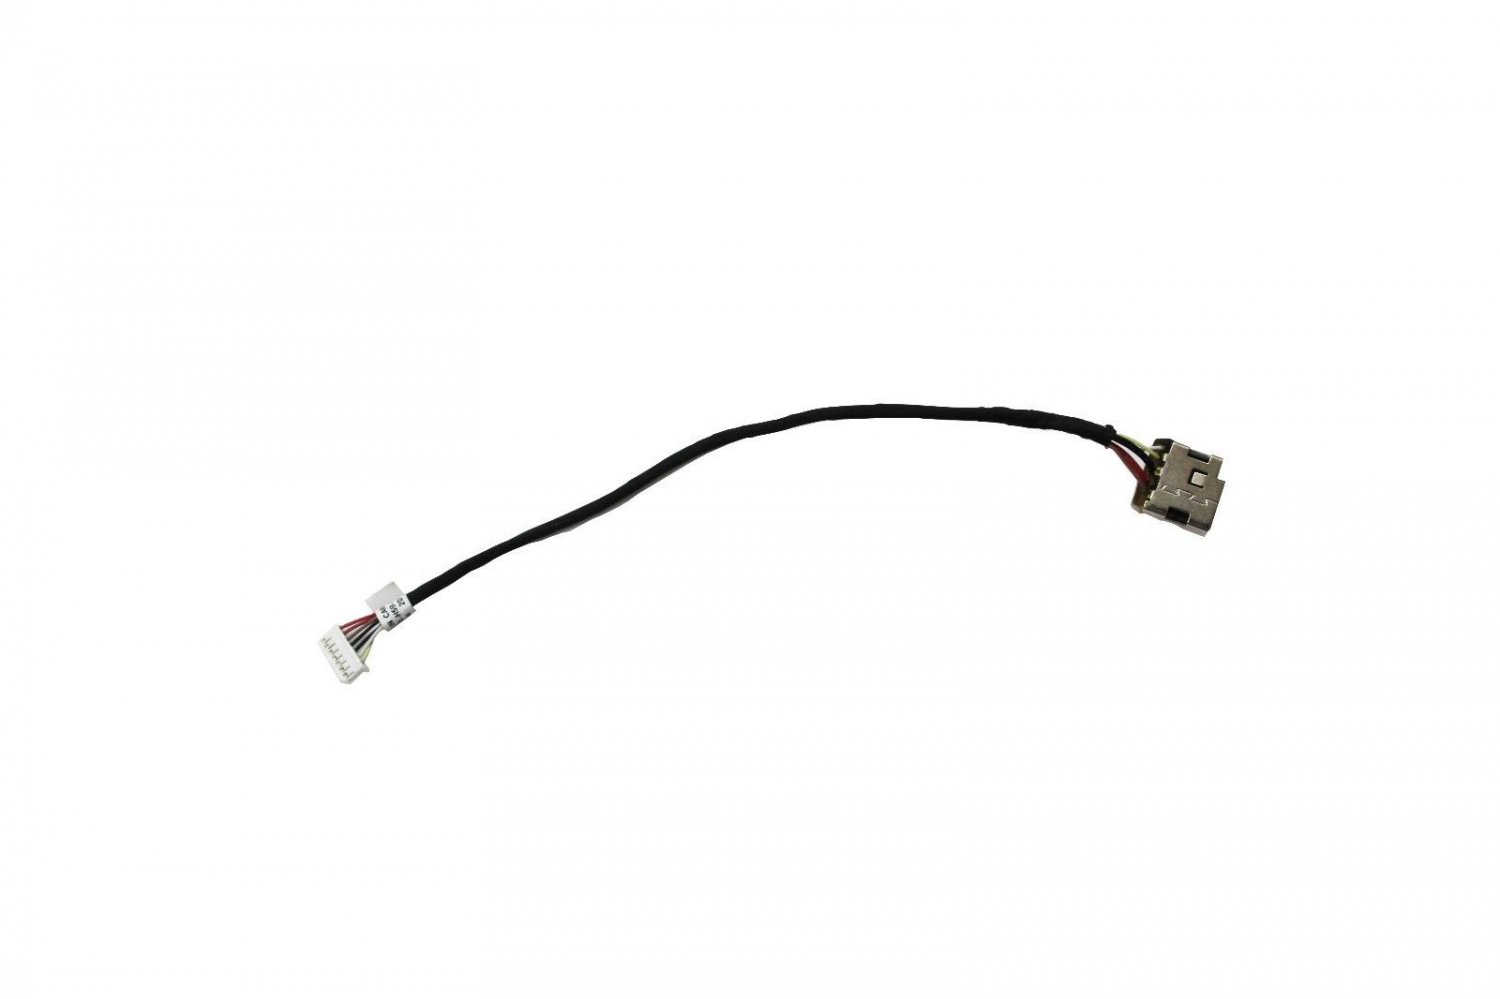 HP 35070SV00-H59-G NEW for HP compaq CQ43 CQ57 PM15DC IN Cable Power Jack cable